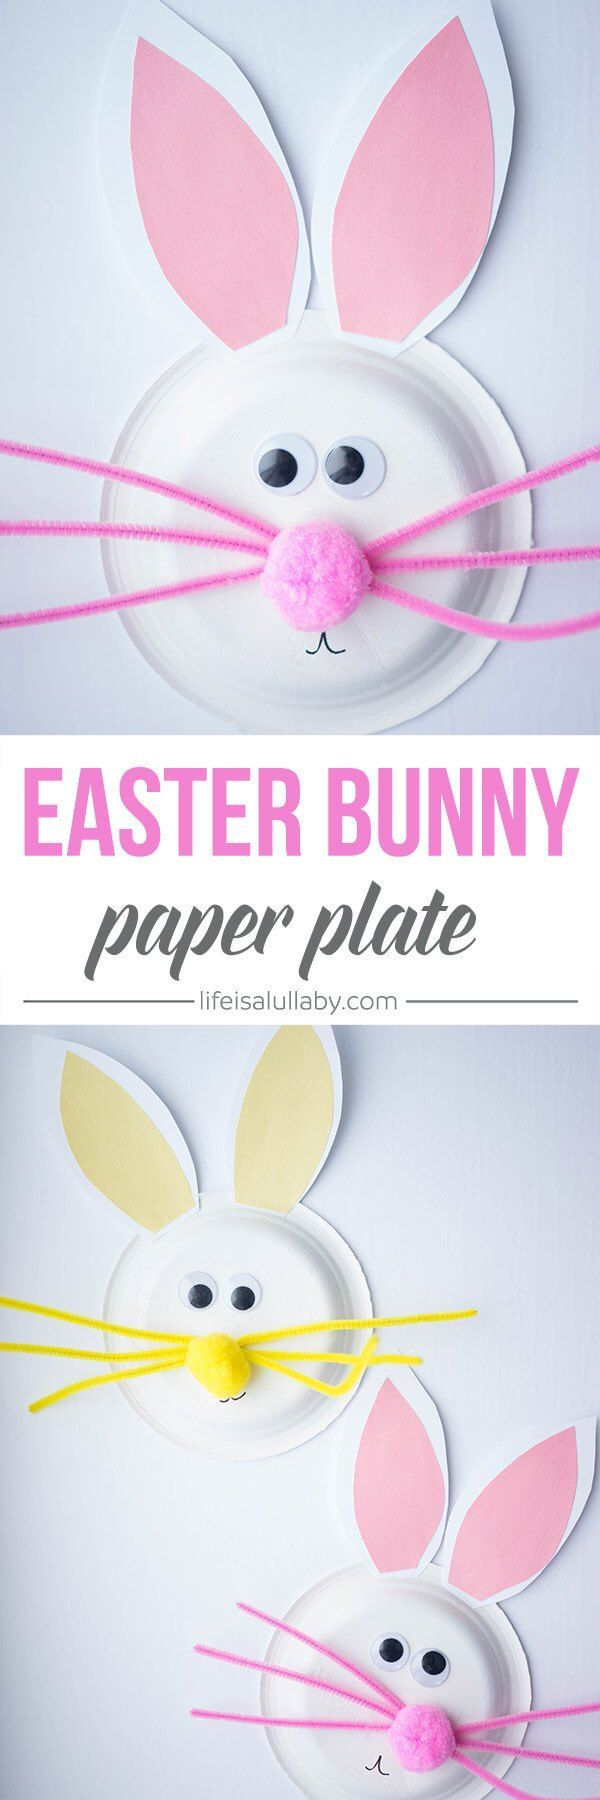 Paper Plate Easter Bunny Craft | A fun and simple Easter craft for kids! #ad